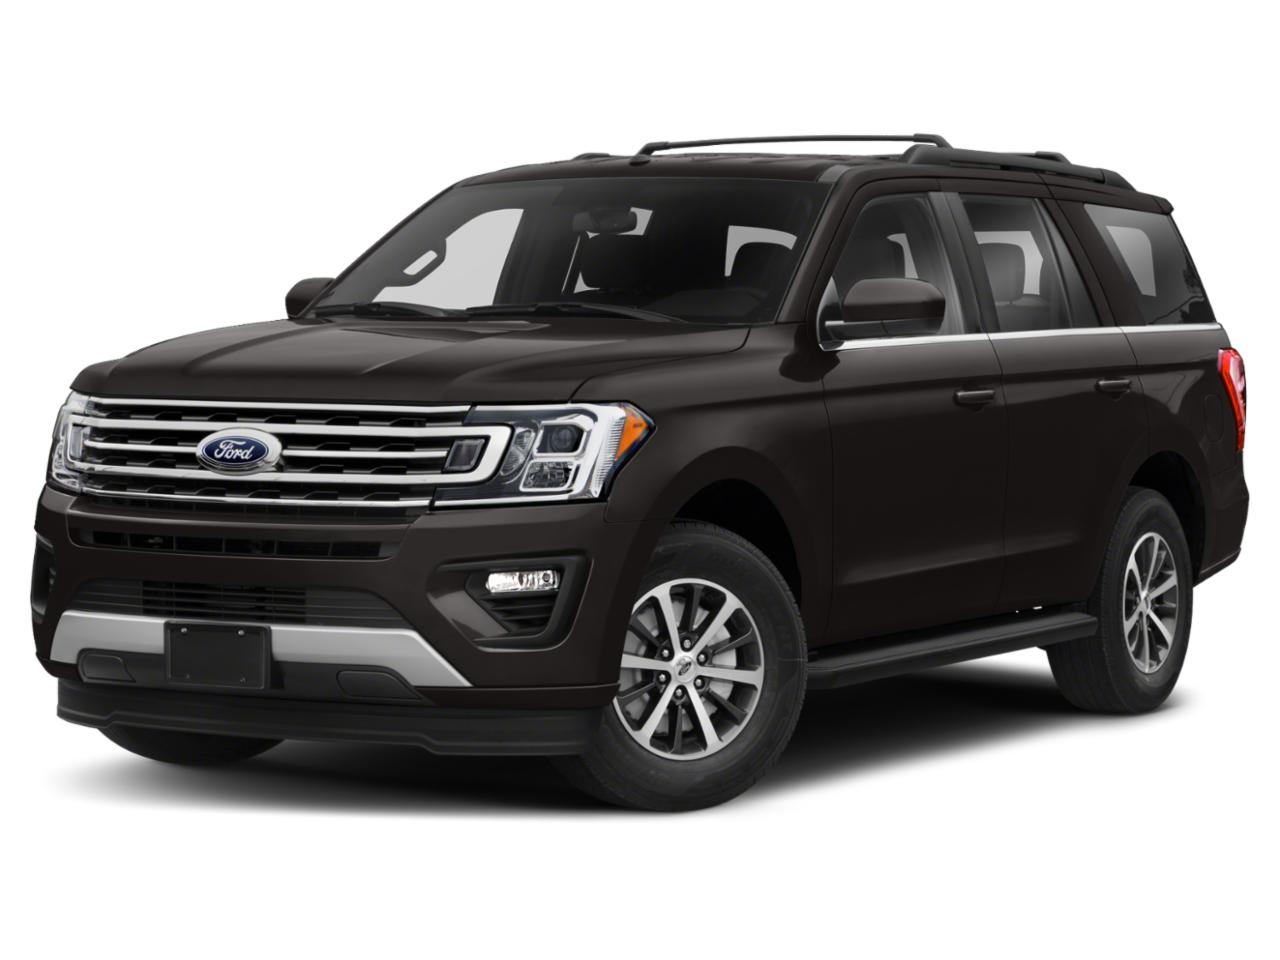 2019 Ford Expedition Vehicle Photo in Odessa, TX 79762